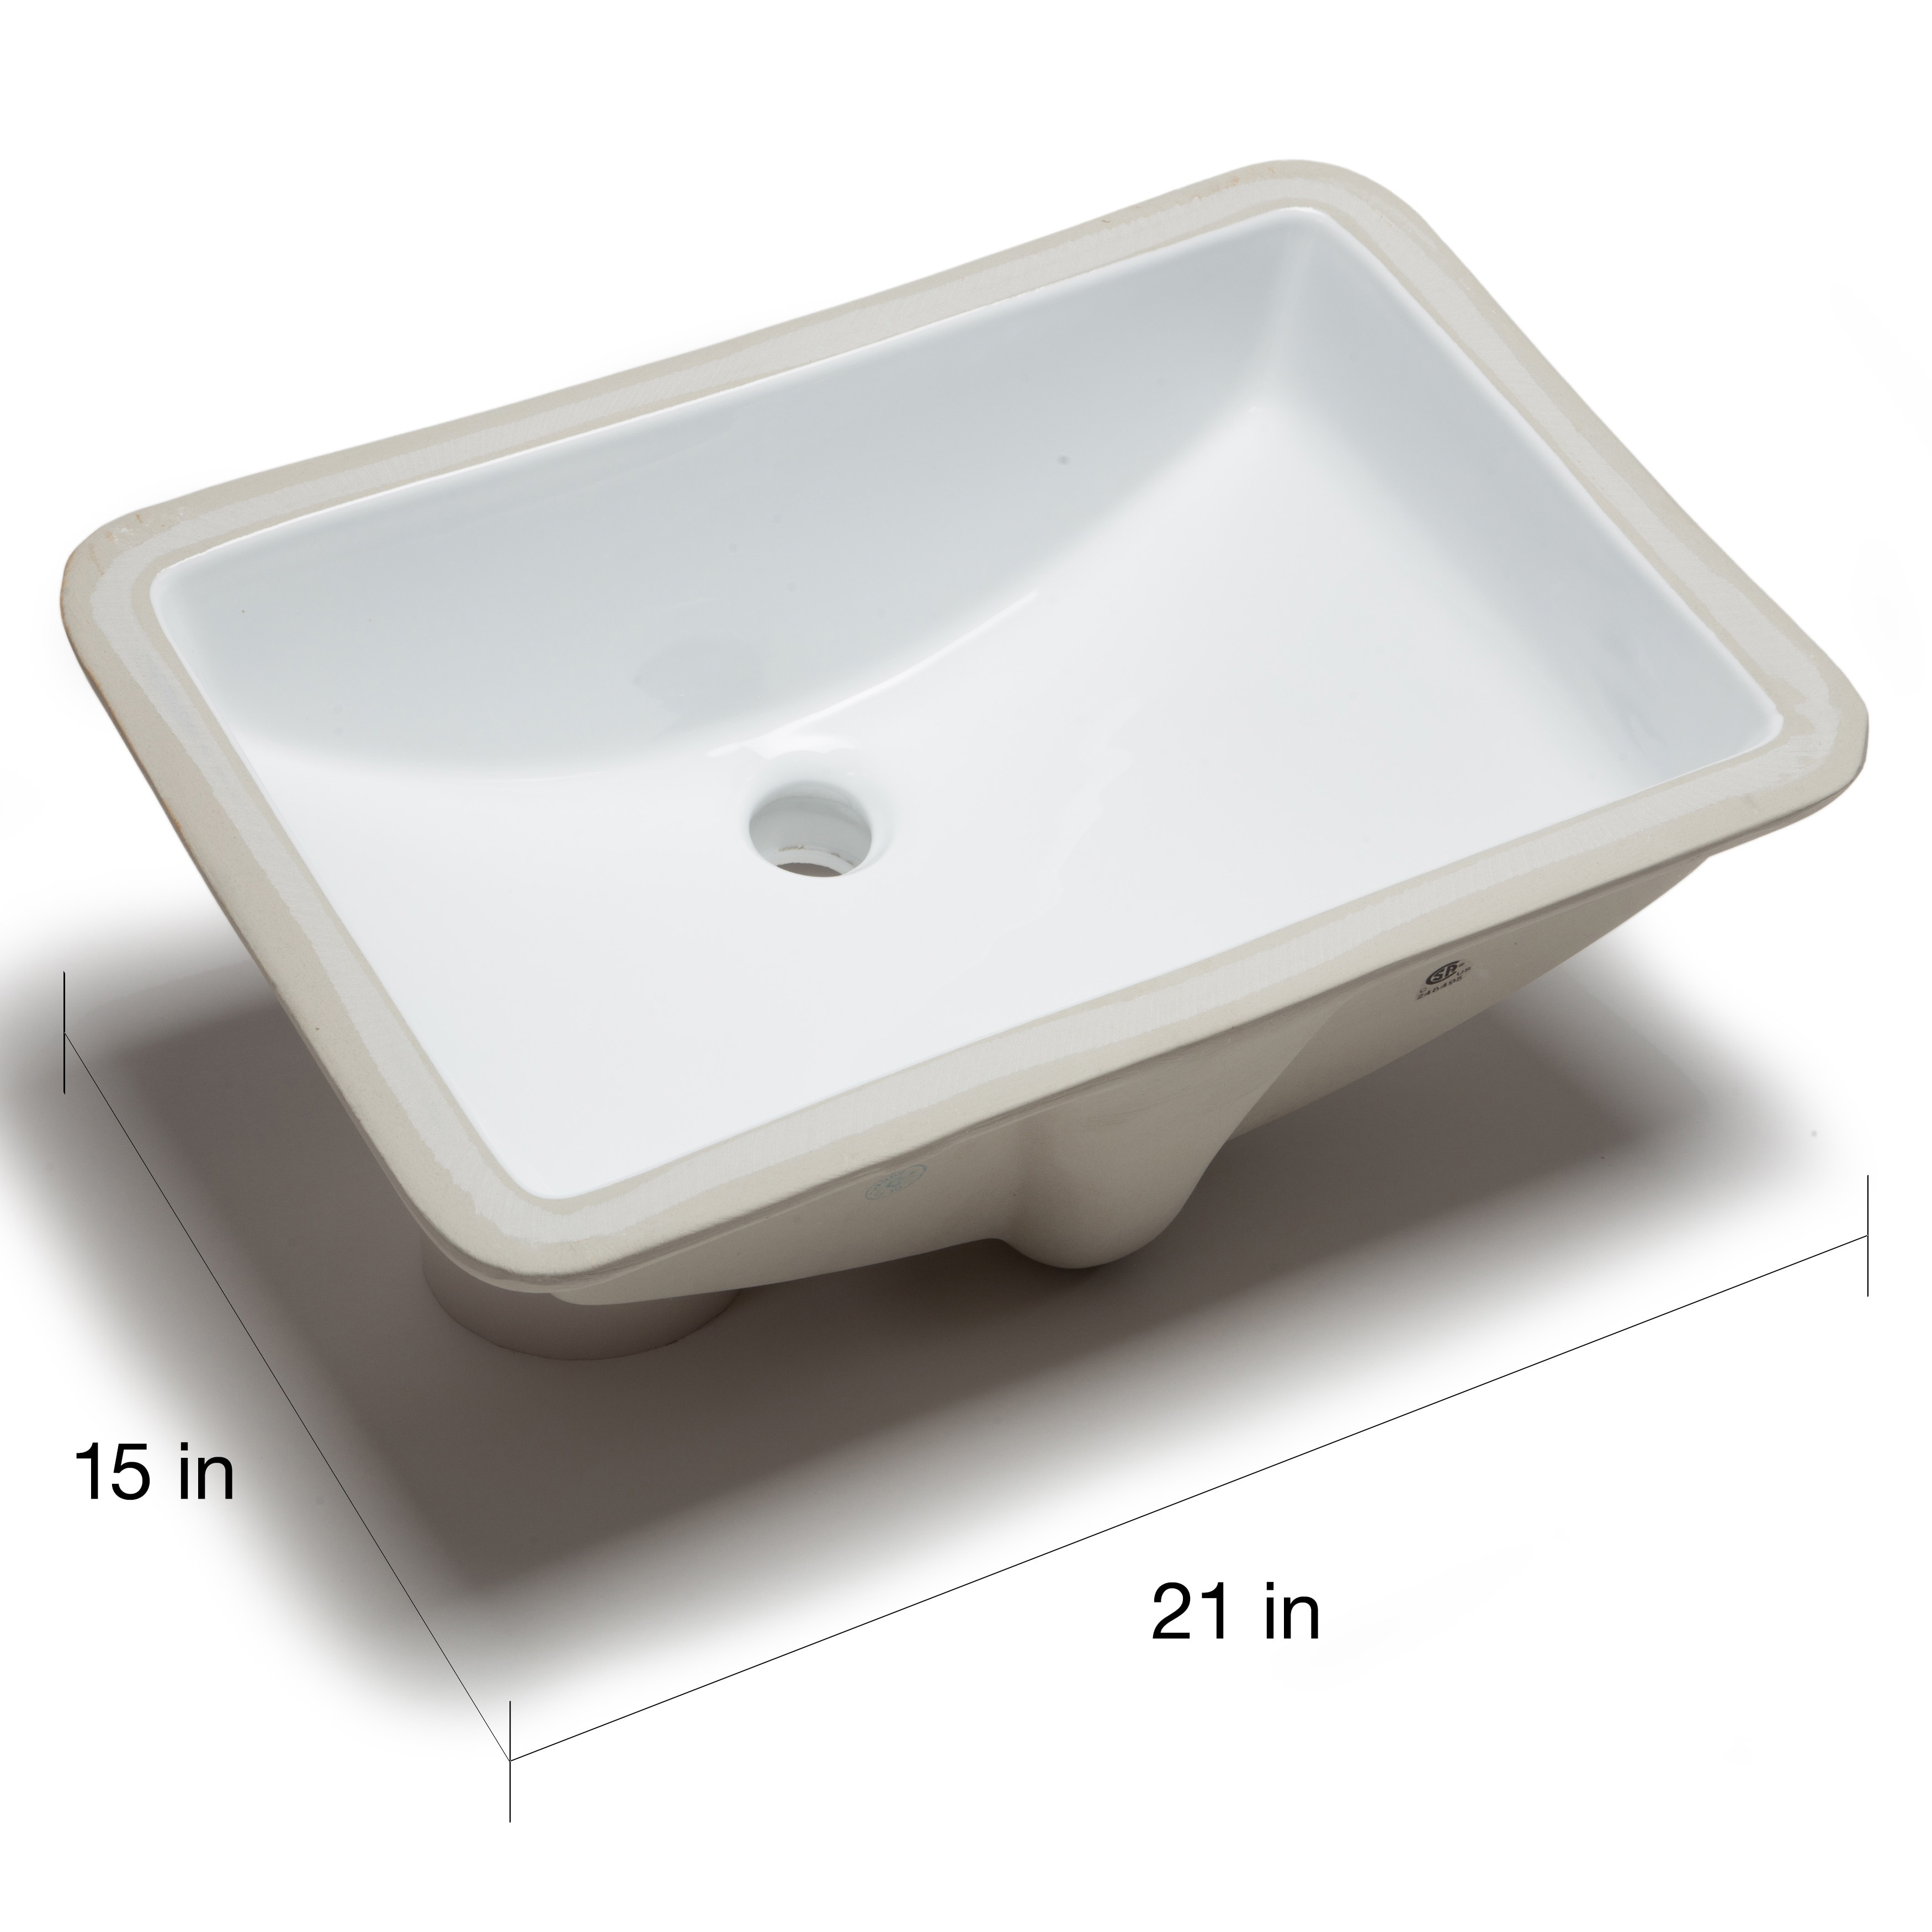 Hahn White Ceramic Large Rectangular Undermount Bathroom Sink Free Shipping Today 8818832